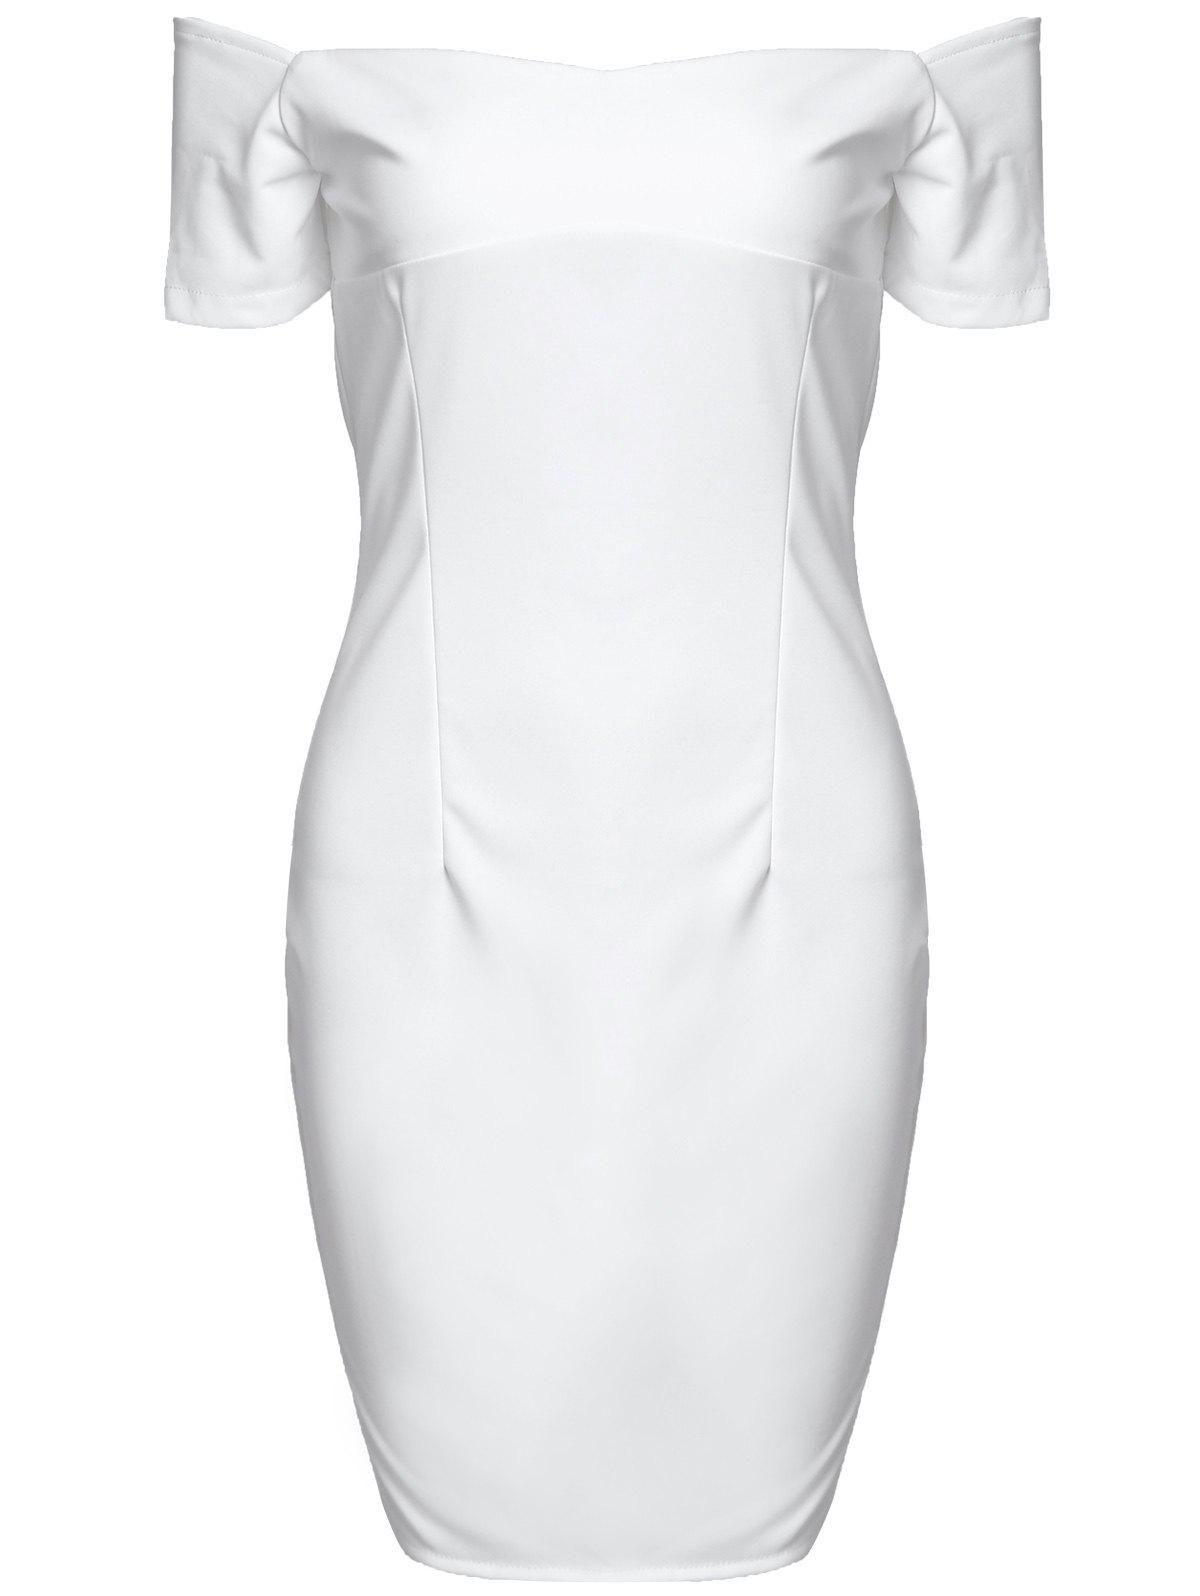 Stylish Women's Off The Shoulder Short Sleeve Solid Color Bodycon Dress